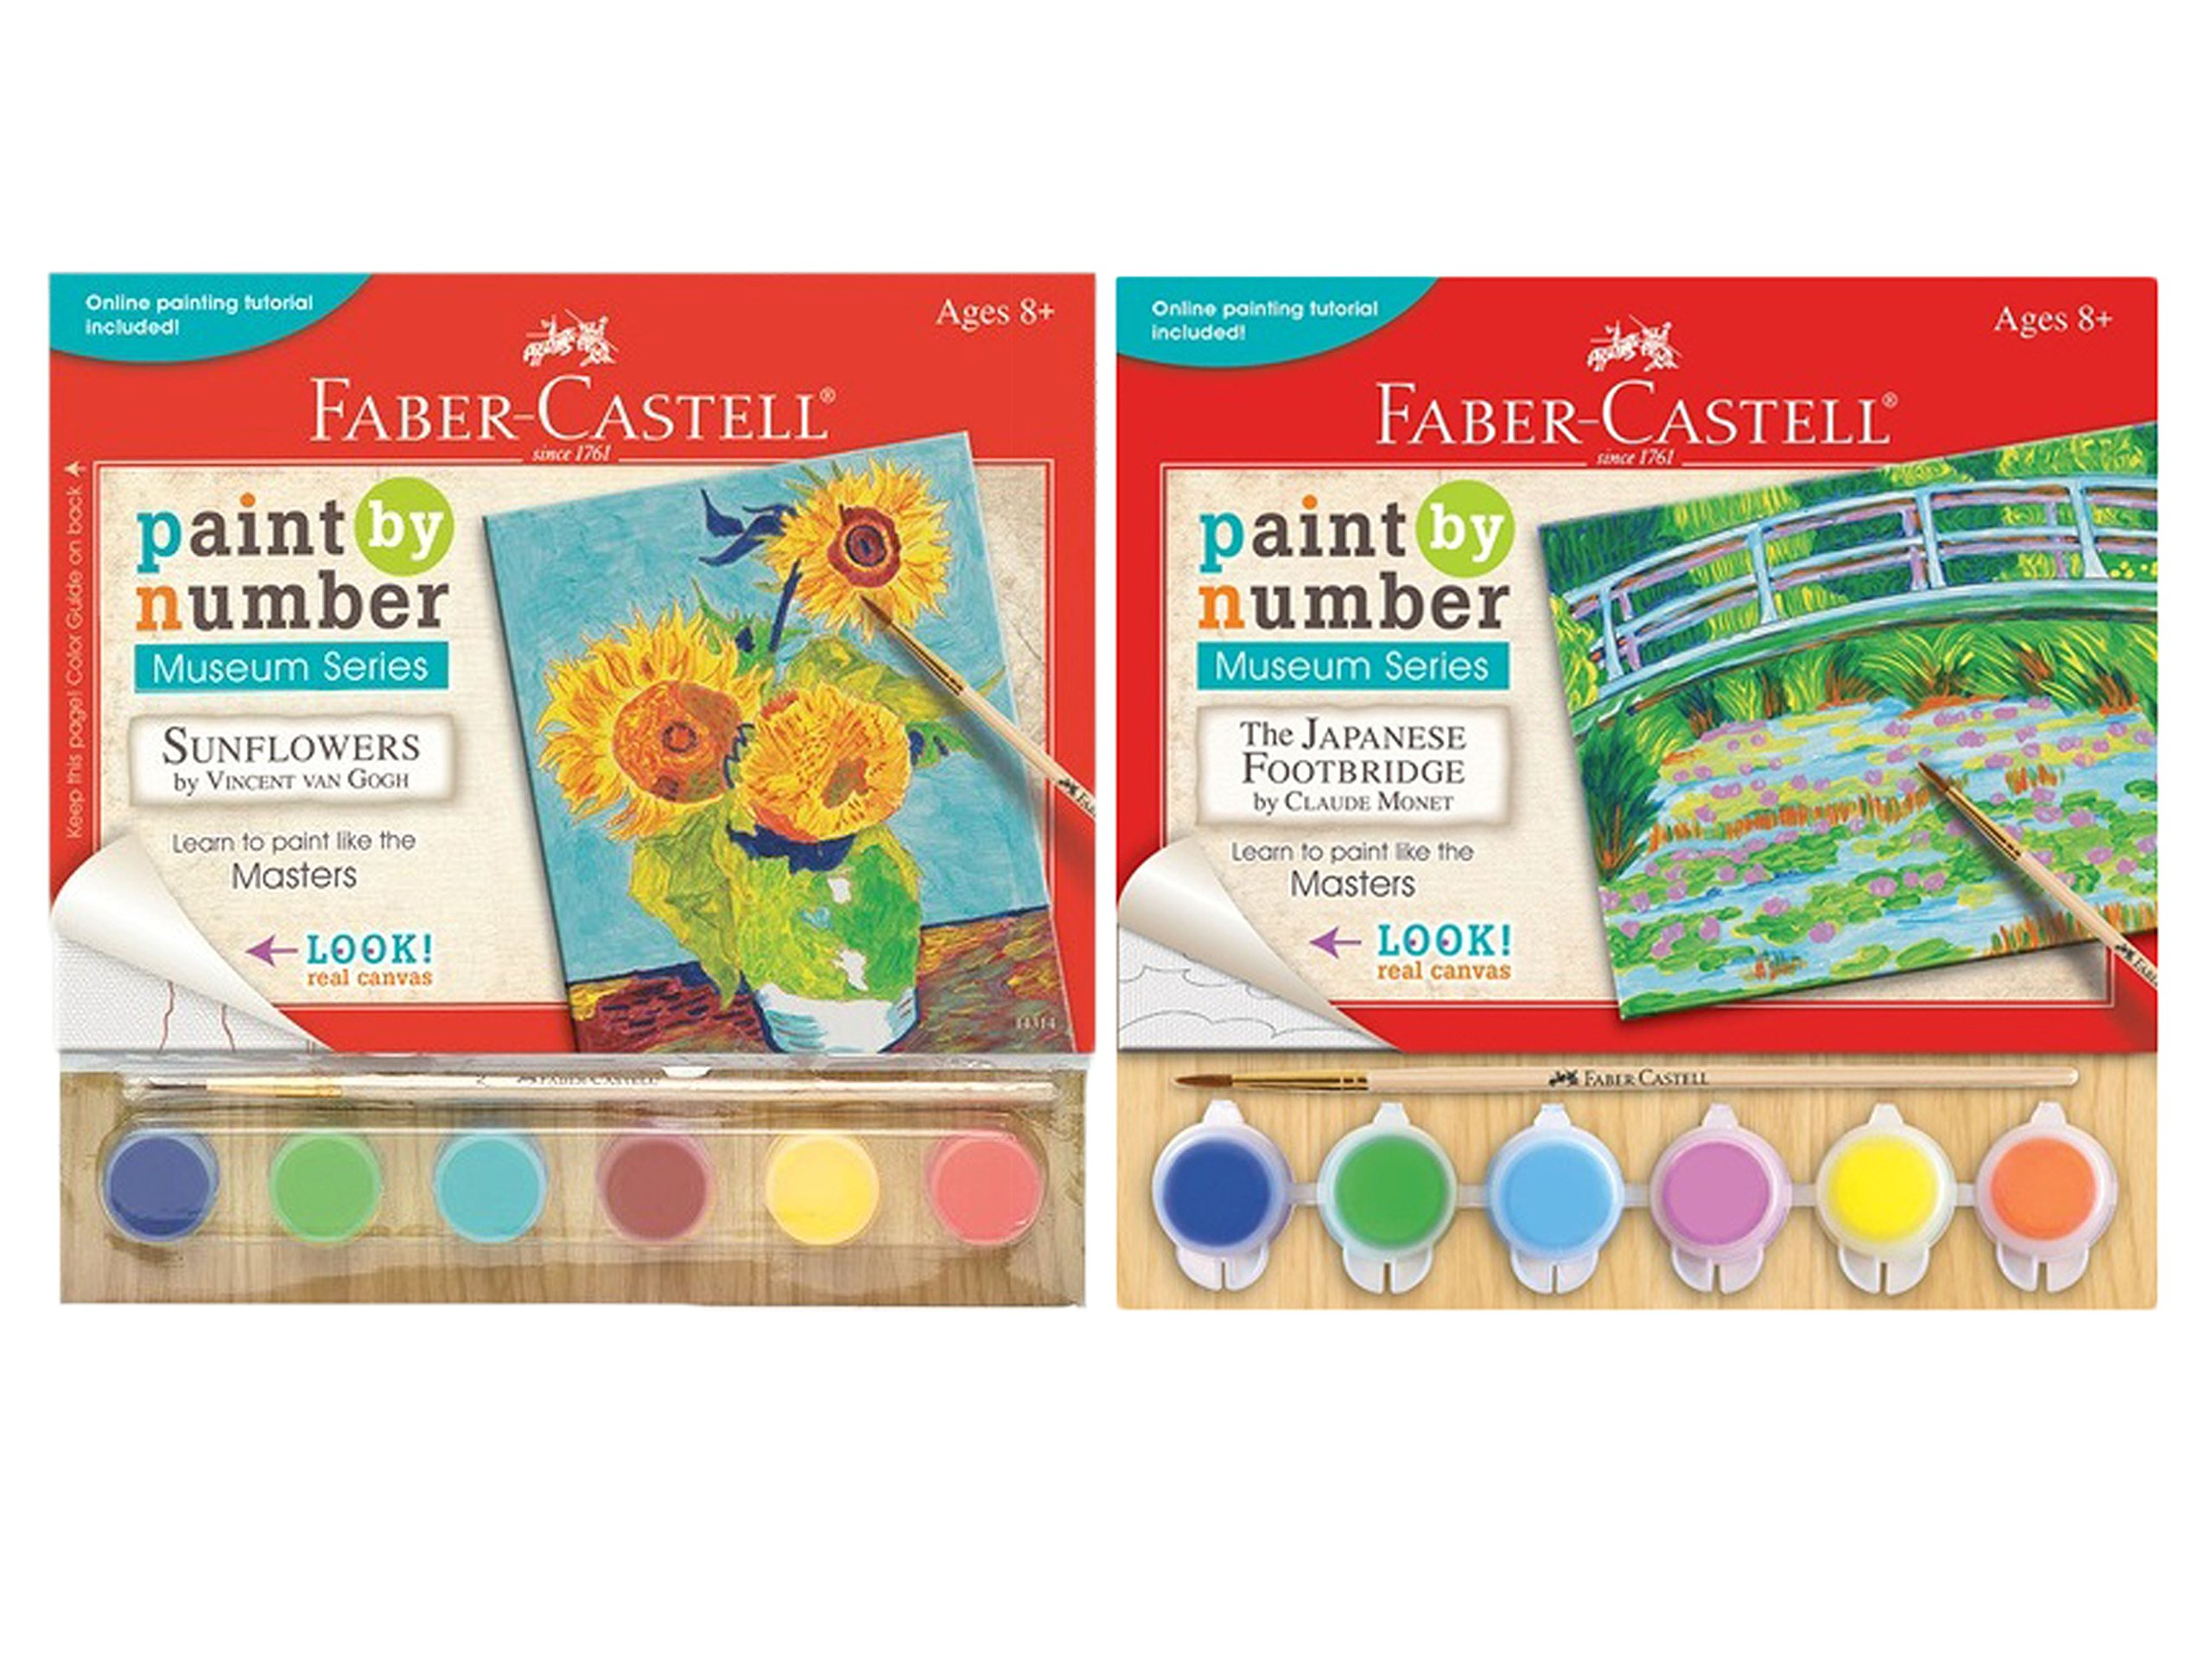 Faber Castell Paint by Number Sunflowers by Vincent Van Gogh and The Japanese Footbridge by Claude Monet Bundled by Maven Gifts